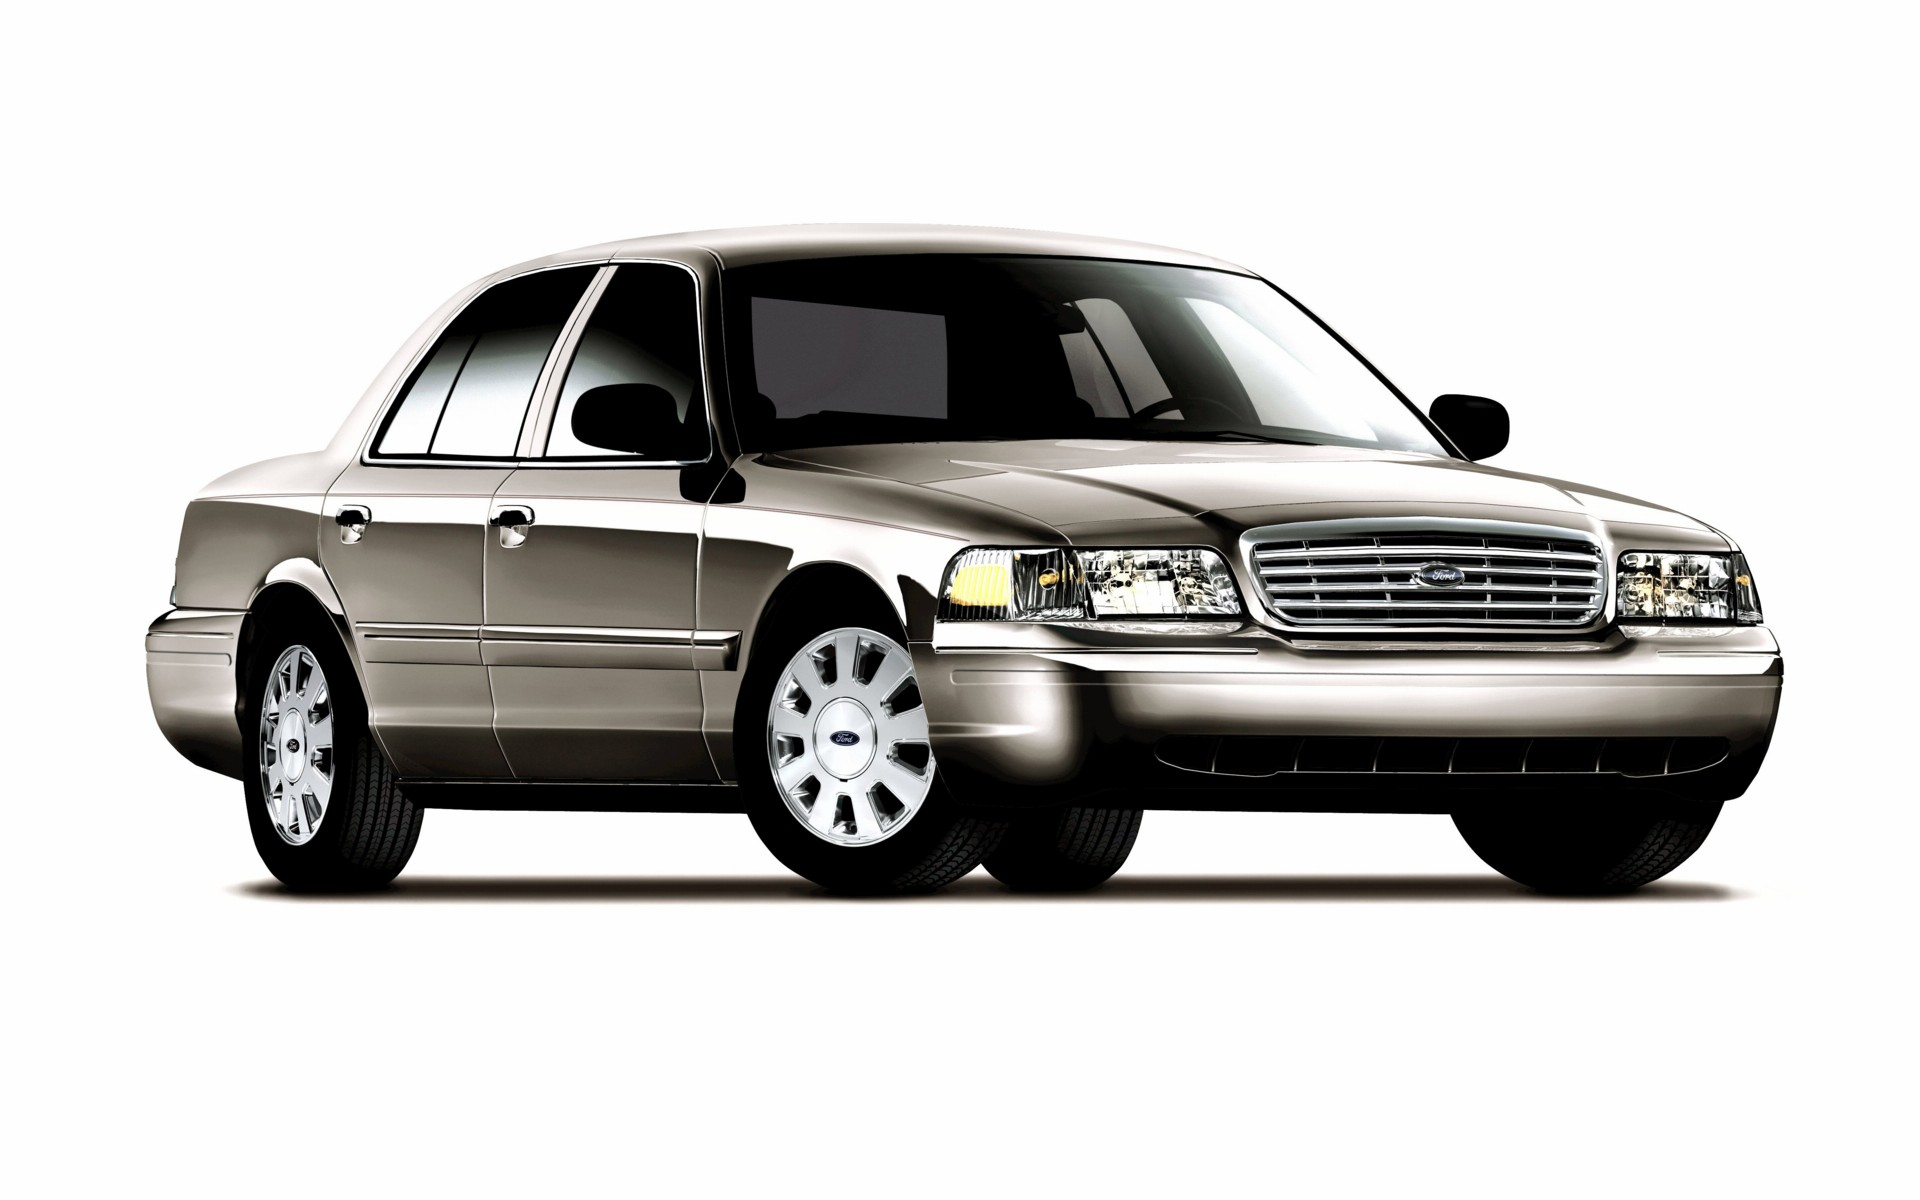 2007 Ford Crown Victoria #9